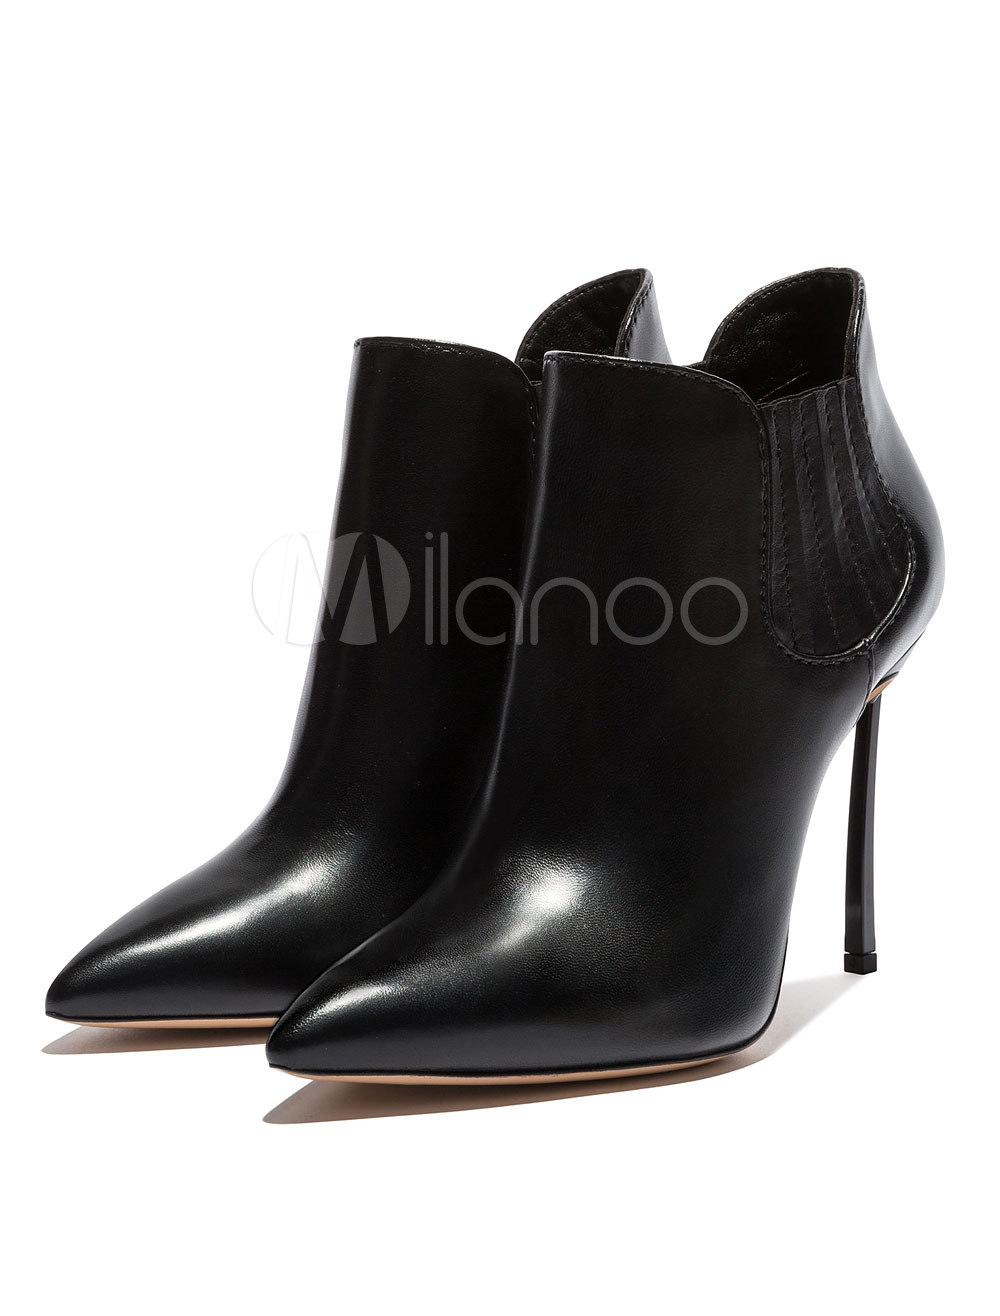 Buy High Heel Booties Women's Black Pointed Toe Slip On Ankle Boots for $94.49 in Milanoo store